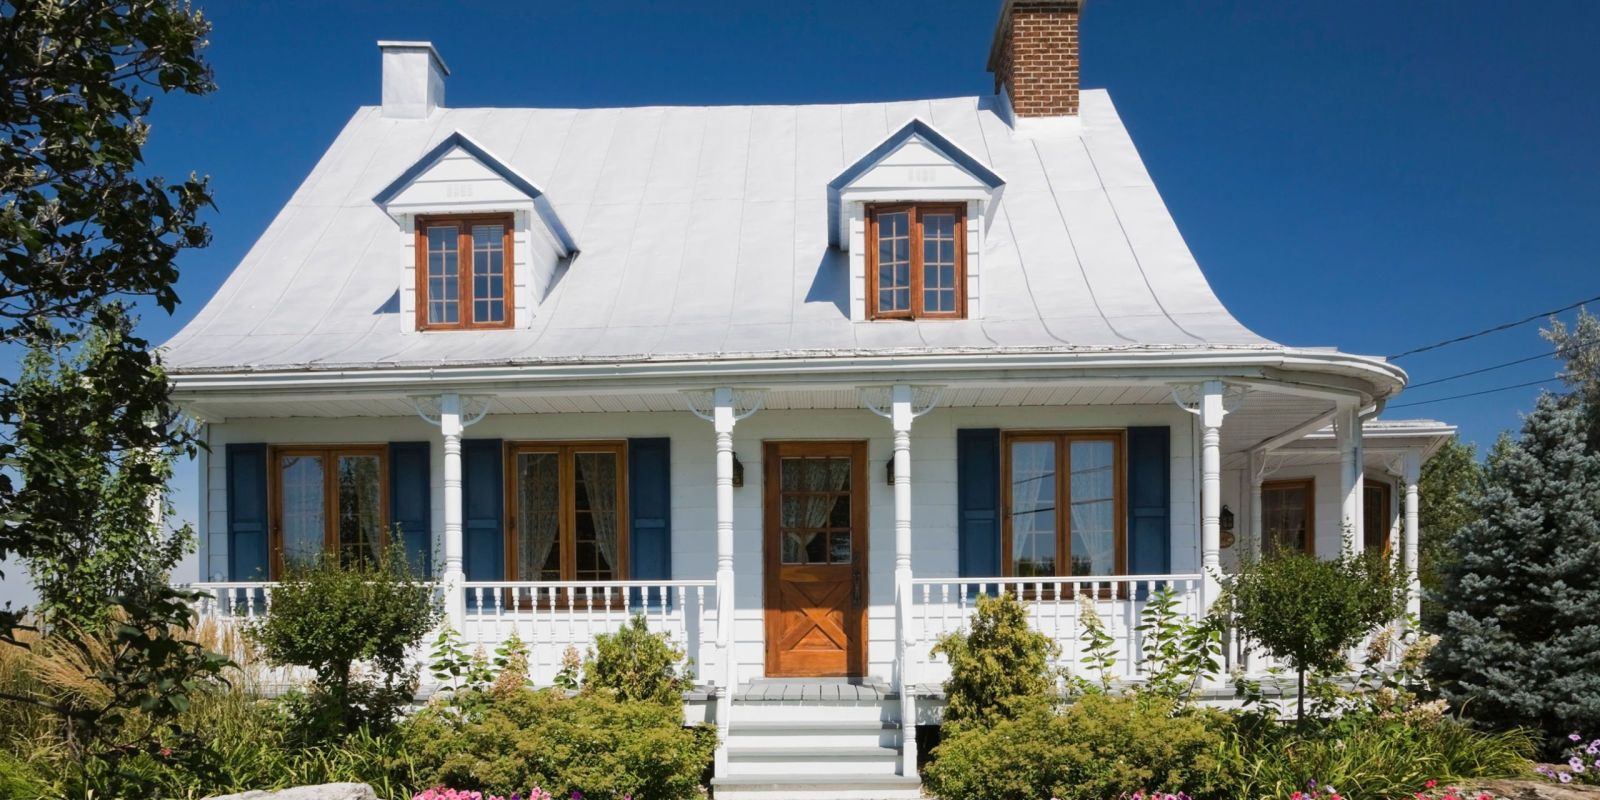 7 Critical Questions To Ask Yourself Before Buying An Old House